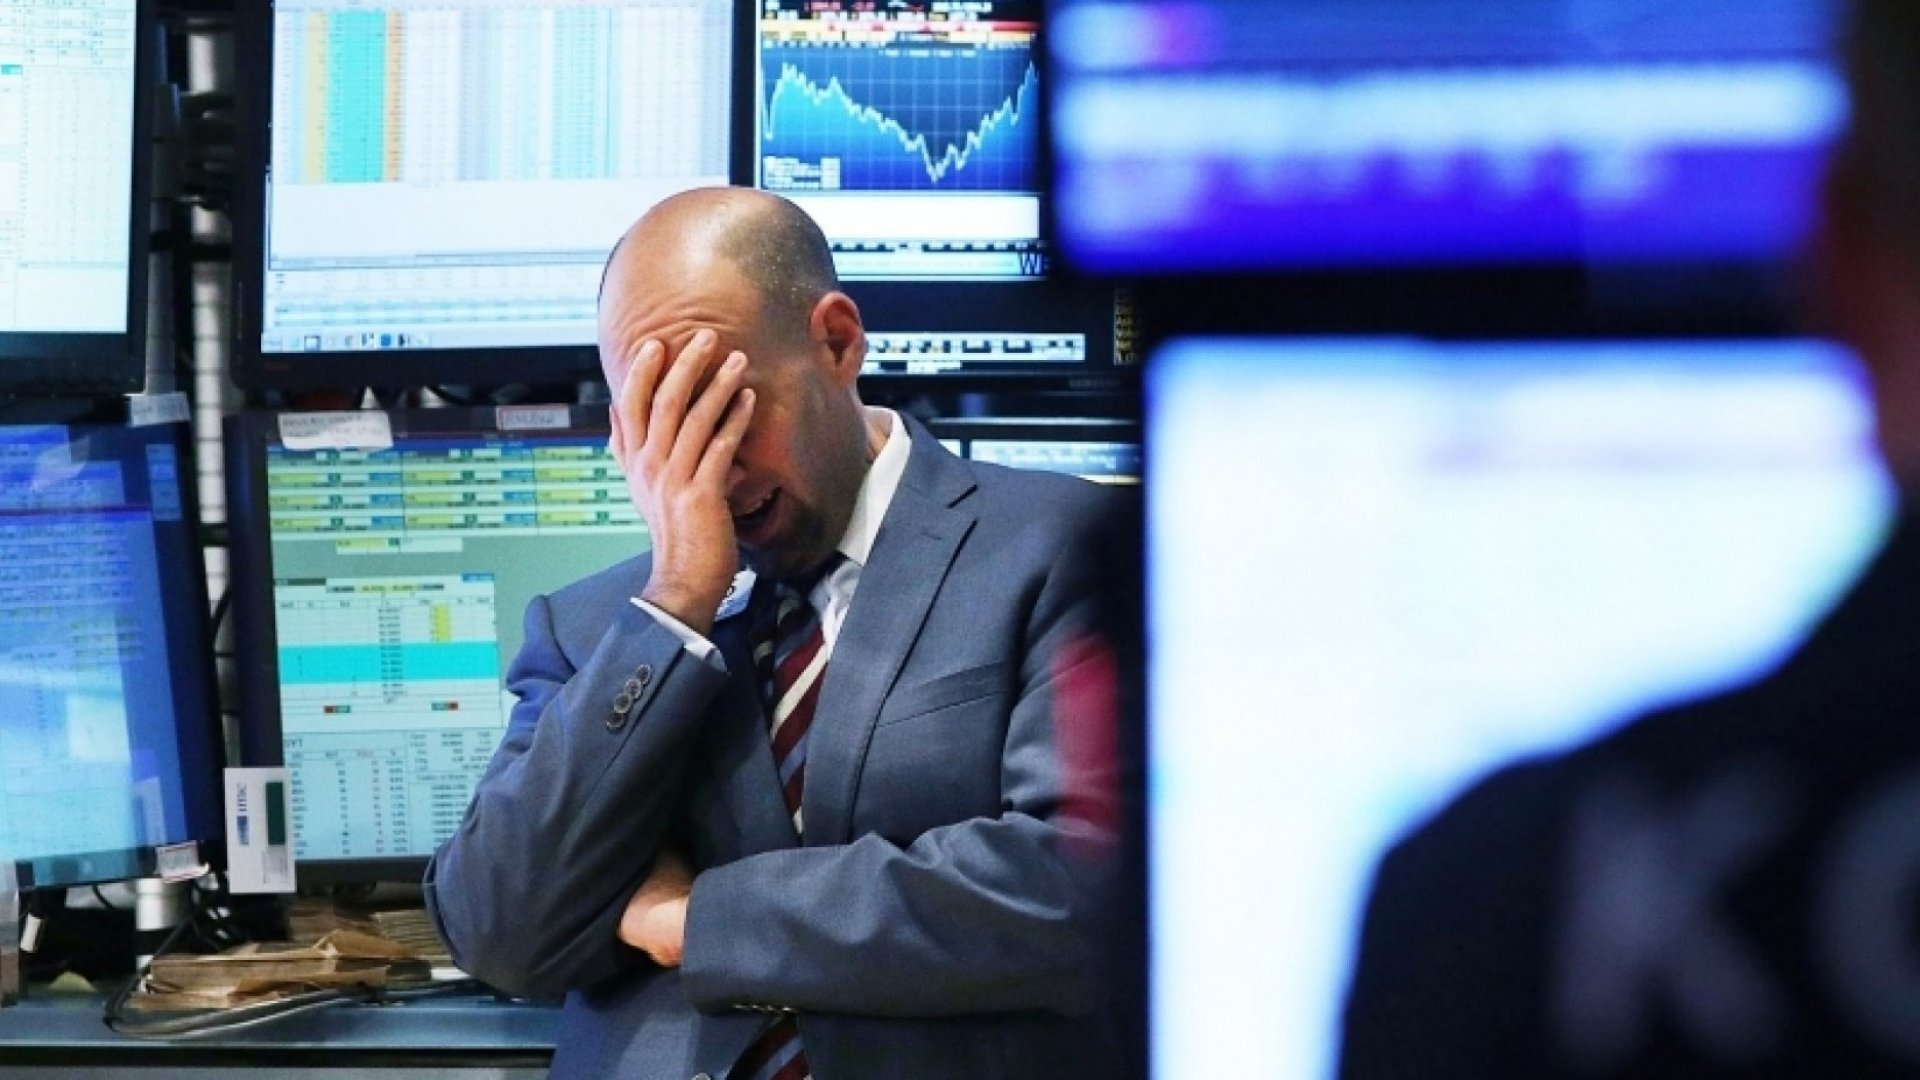 3 Things to Make You Feel Better About the Stock Market Turmoil